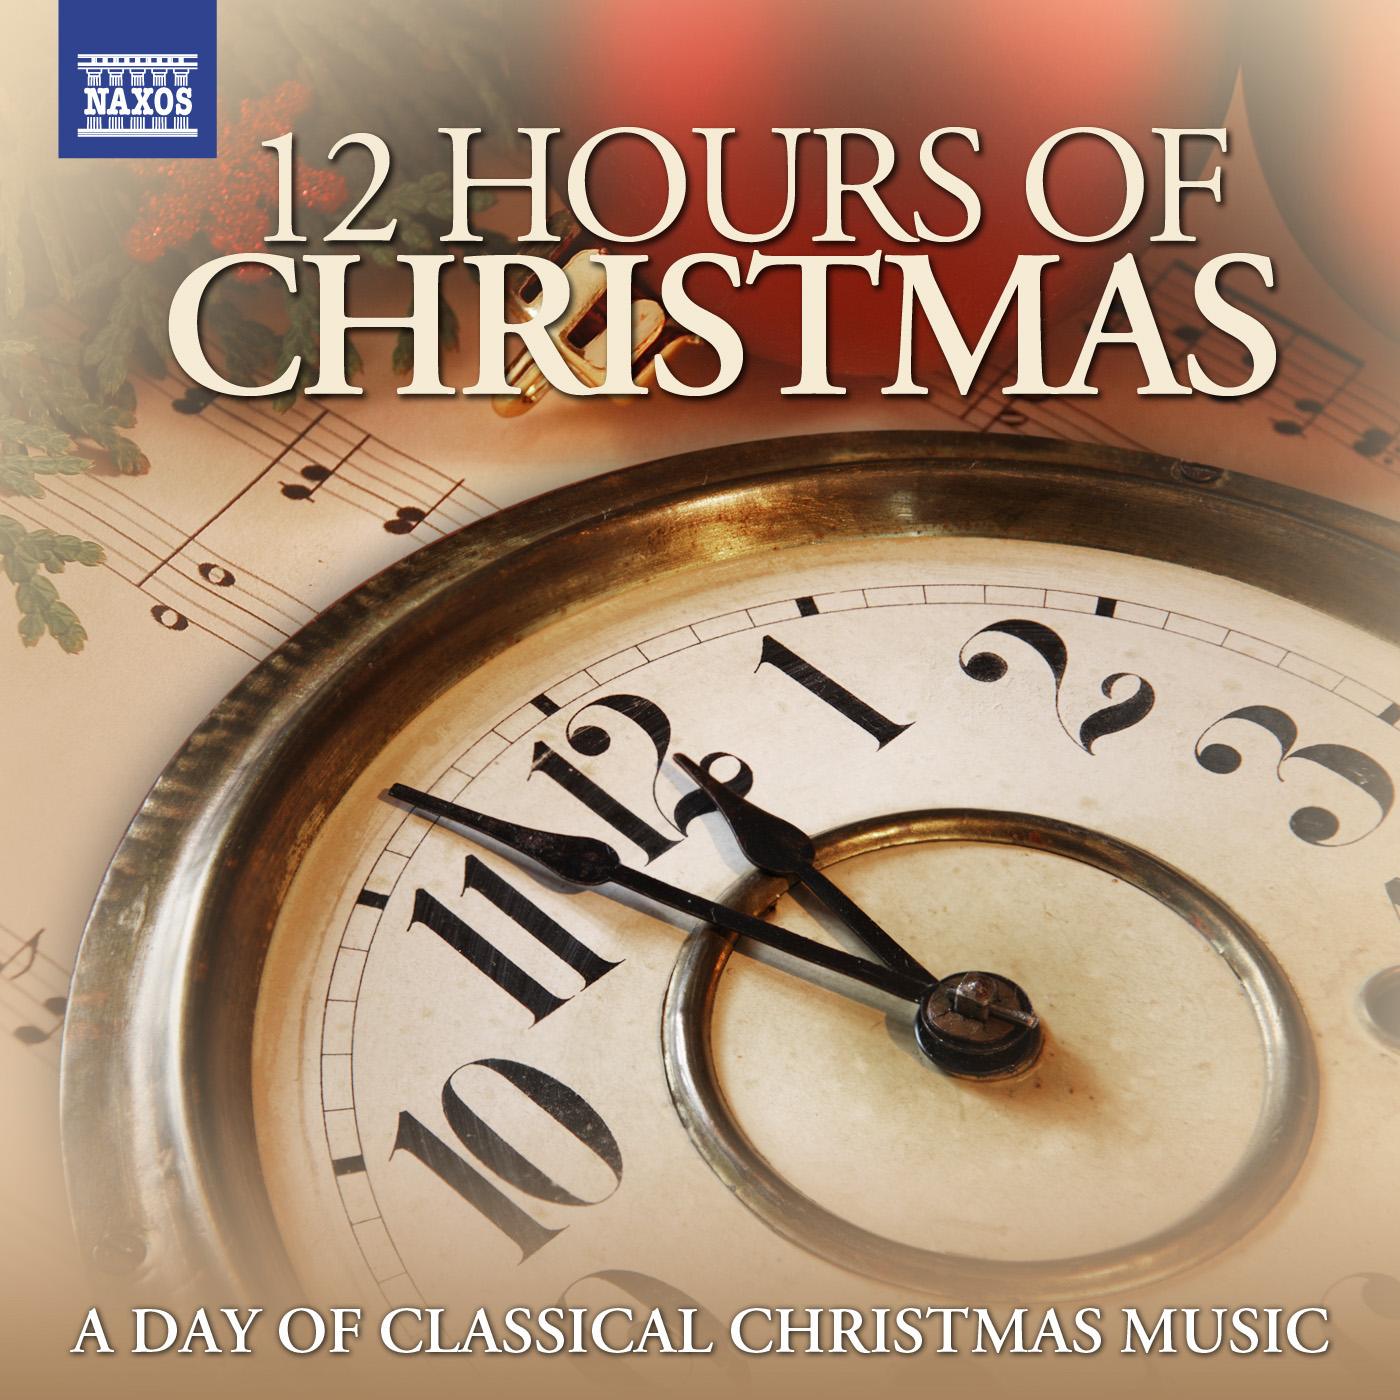 12 Hours of Christmas: A Day of Classical Christmas Music